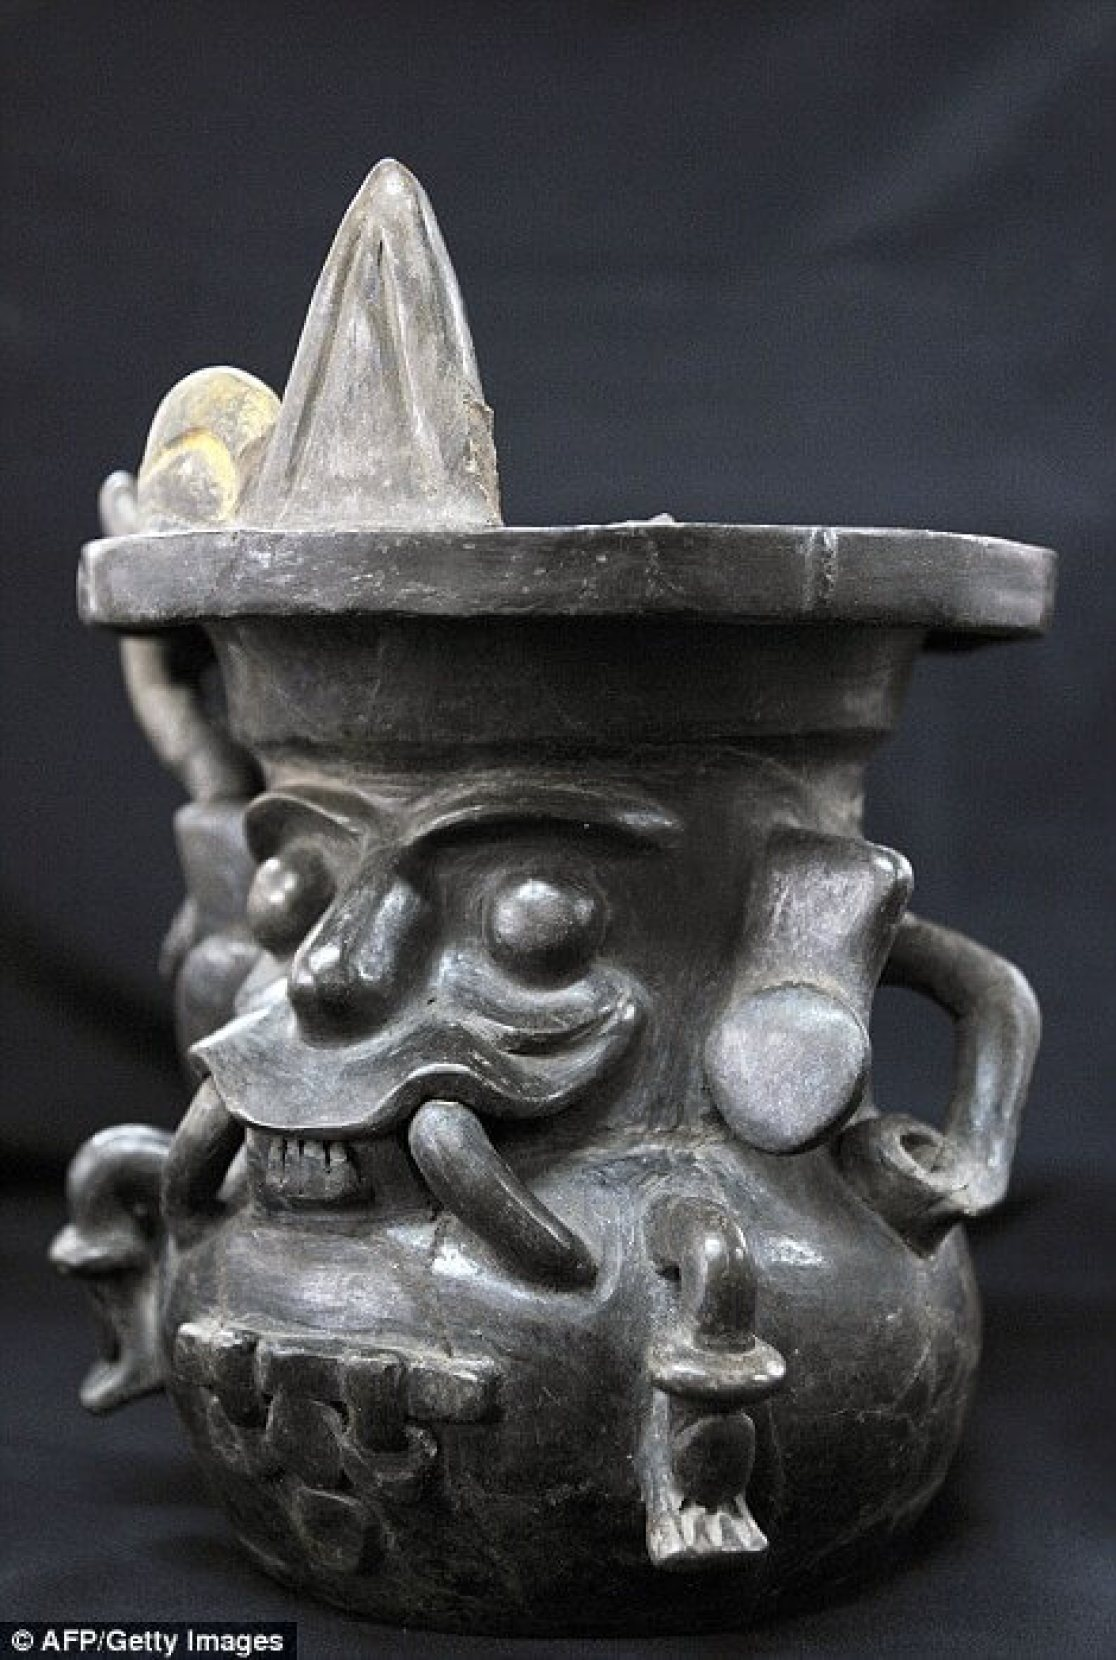 "Handout picture released by the National Institute of Anthropology and History (INAH in Spanish) showing a jar representing the god Tlaloc (God of the Rain), found at the Temple of the Feathered Serpent (Serpiente Emplumada) at the Teotihuacan complex in Mexico City, taken on October 25, 2014. Archaeologist Sergio Gomez announced in a press conference in Mexico City on October 29, 2014 that new discoveries were made recently at the temple. The discovered offering is located at 103 metres from the entrance of the temple and contains thousands of items including 4 stone sculptures and jade ornaments. AFP PHOTO/INAH --- RESTRICTED TO EDITORIAL USE - MANDATORY CREDIT ""AFP PHOTO /INAH"" - NO MARKETING NO ADVERTISING CAMPAIGNS - DISTRIBUTED AS A SERVICE TO CLIENTS--/AFP/Getty Images"